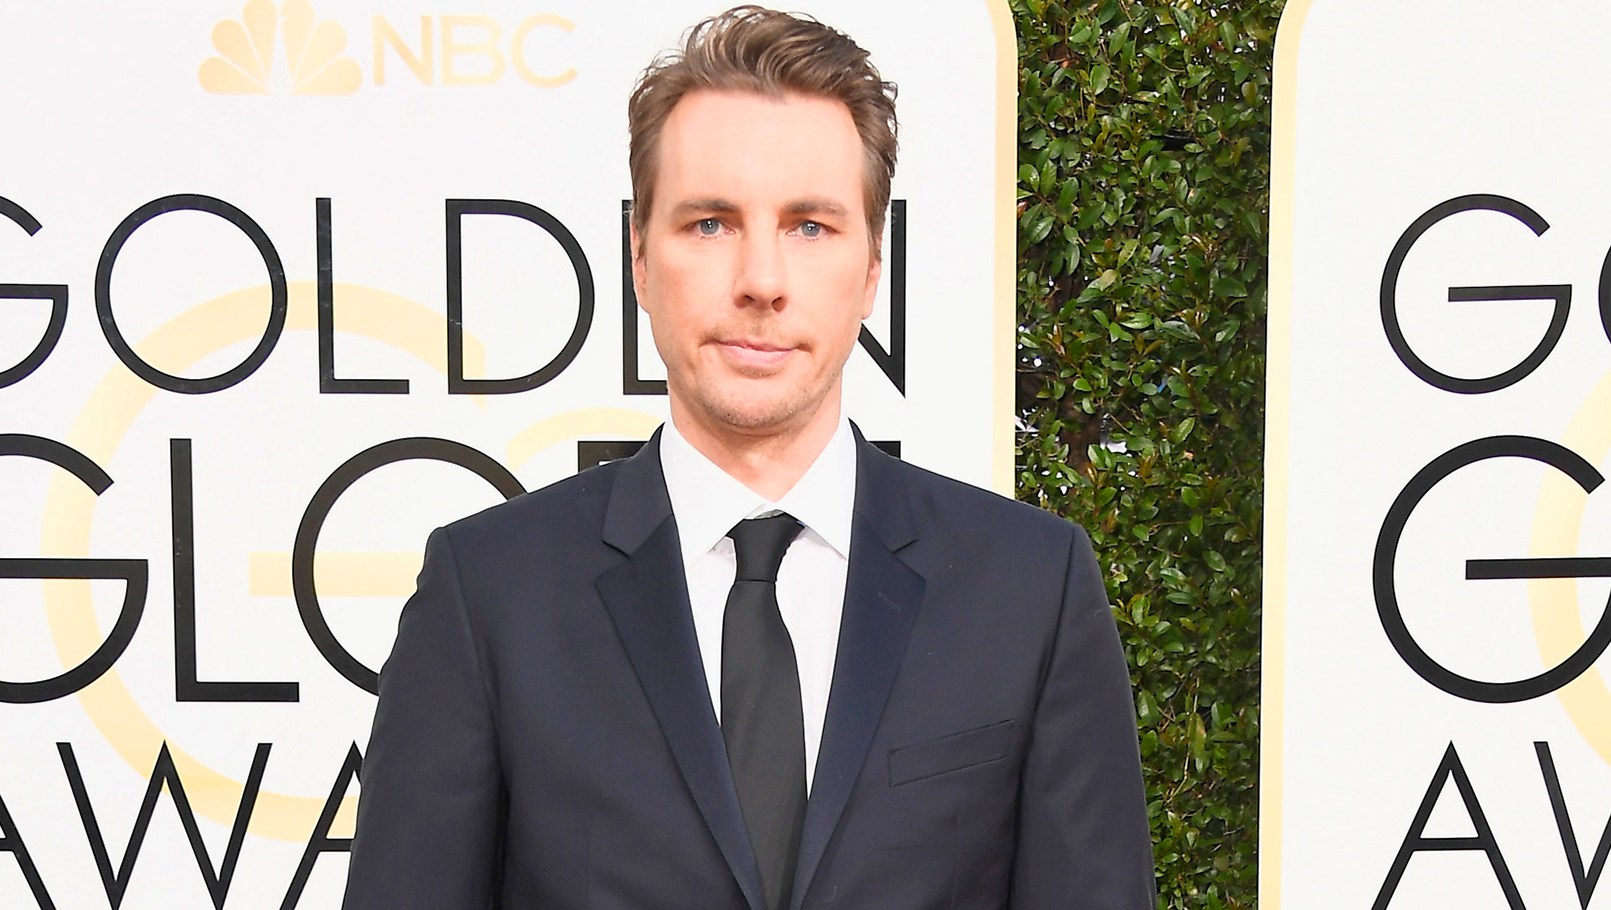 ulie Andrews' Granddaughter Claims She Had an Affair With Dax Shepard 2 Years After He Started Dating Kristen Bell